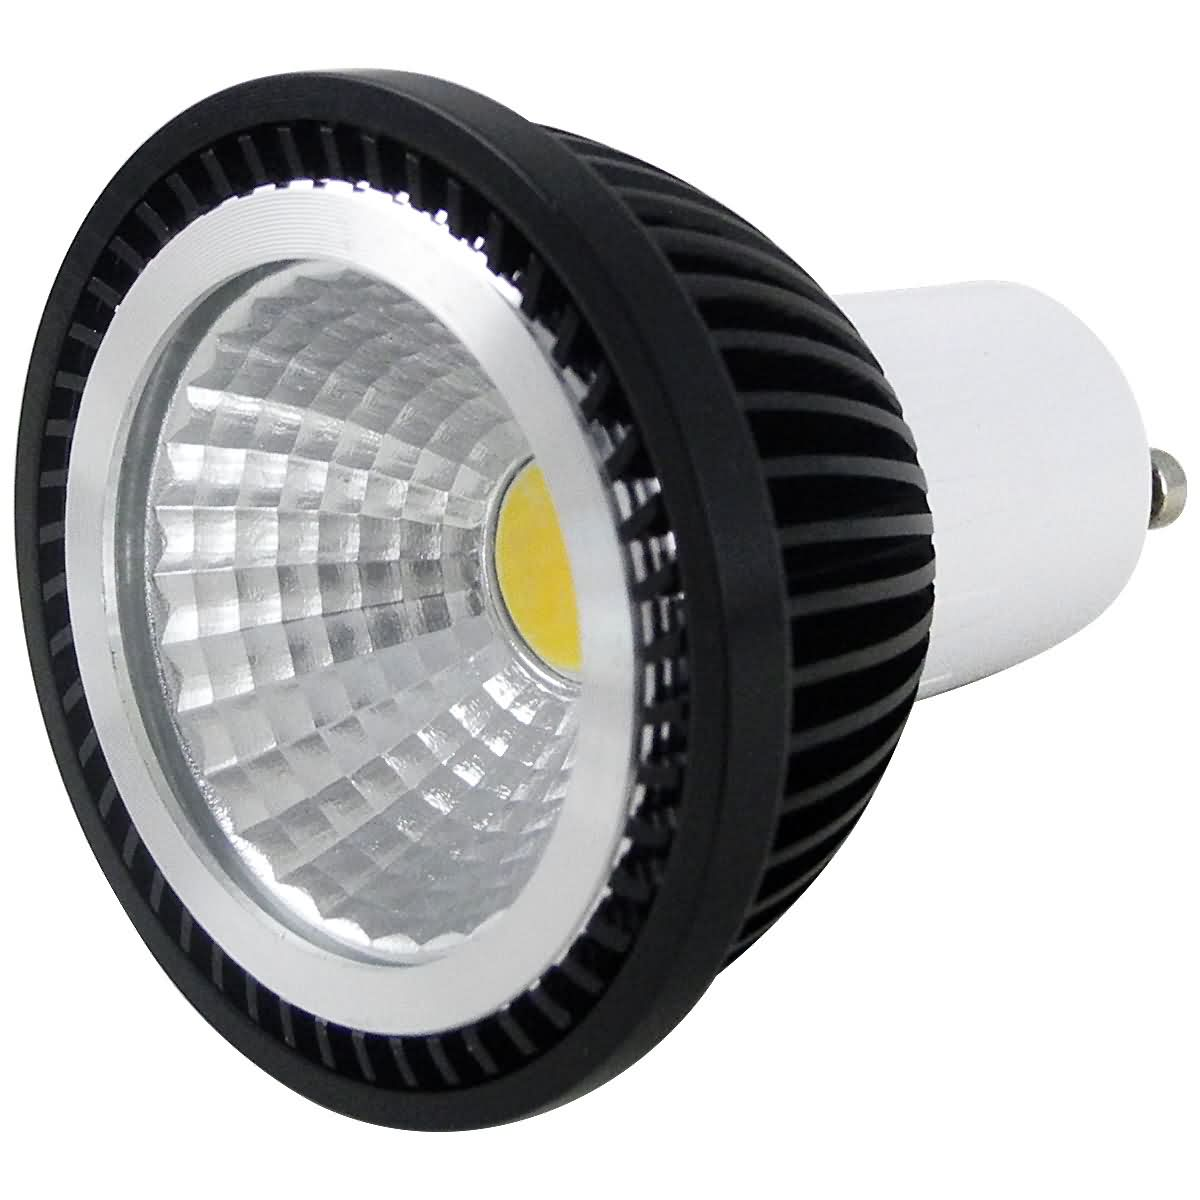 Led Gu10 Mengsled Mengs Gu10 3w Led Spotlight Cob Led Bulb In